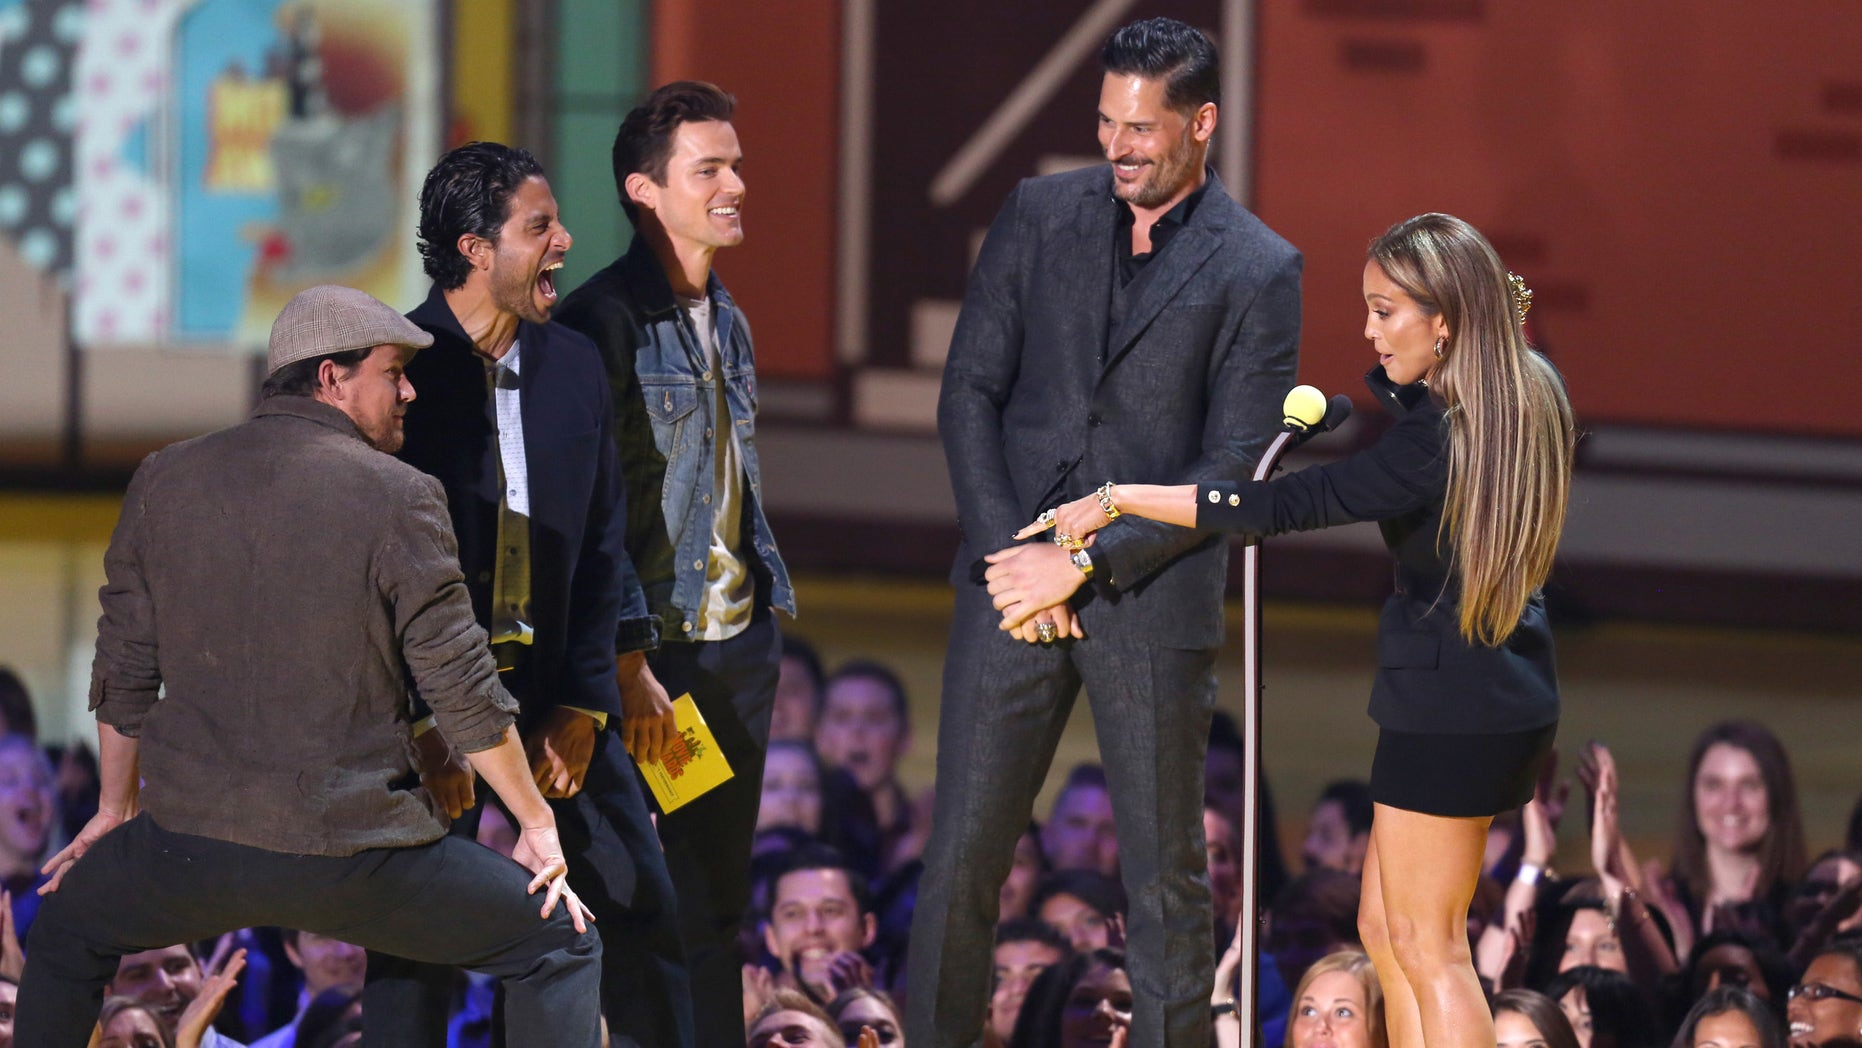 Channing Tatum, from left, Adam Rodriguez, Matt Bomer, and Joe Manganiello present Jennifer Lopez with the award for best scared-as-s**t performance at the MTV Movie Awards at the Nokia Theatre on Sunday, April 12, 2015, in Los Angeles. (Photo by Matt Sayles/Invision/AP)